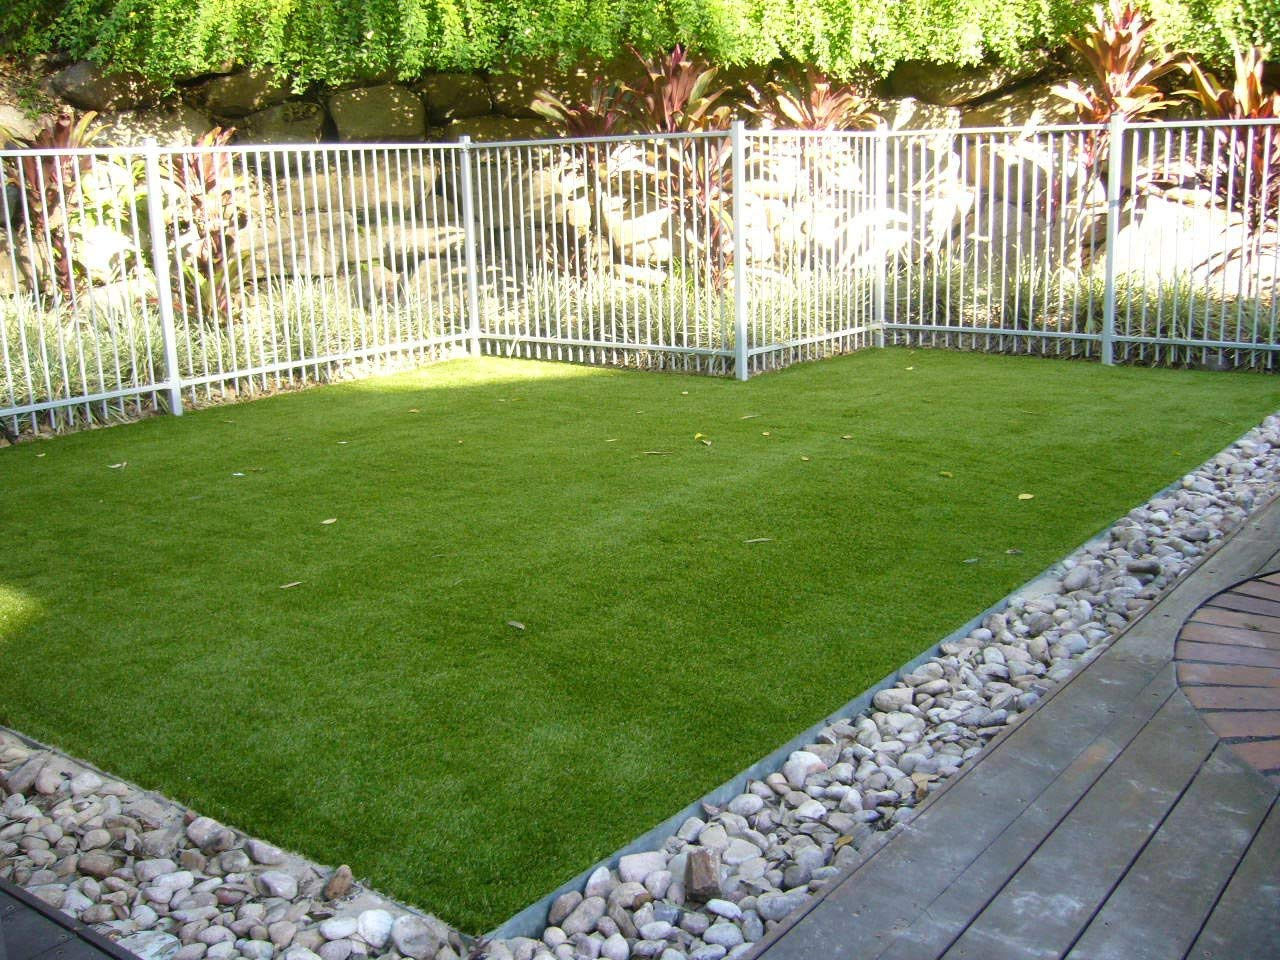 Artificial lawn x 6.5' Synthetic Turf Artficial Grass Dog Pet Area Indoor Outdoor Landscape, 5.5'x6.5', Green